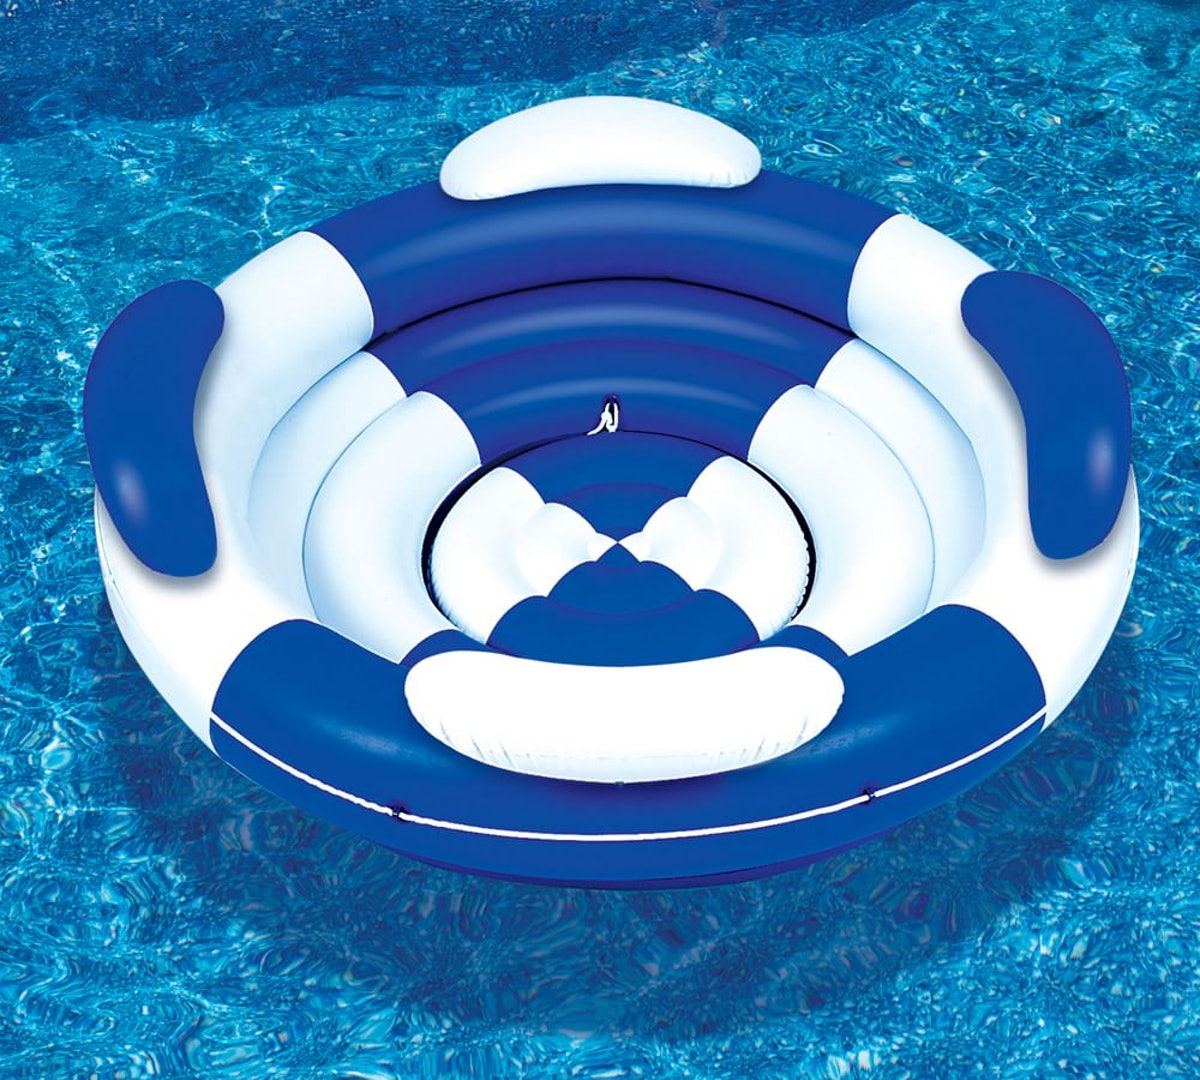 Round Lounger Pool Float